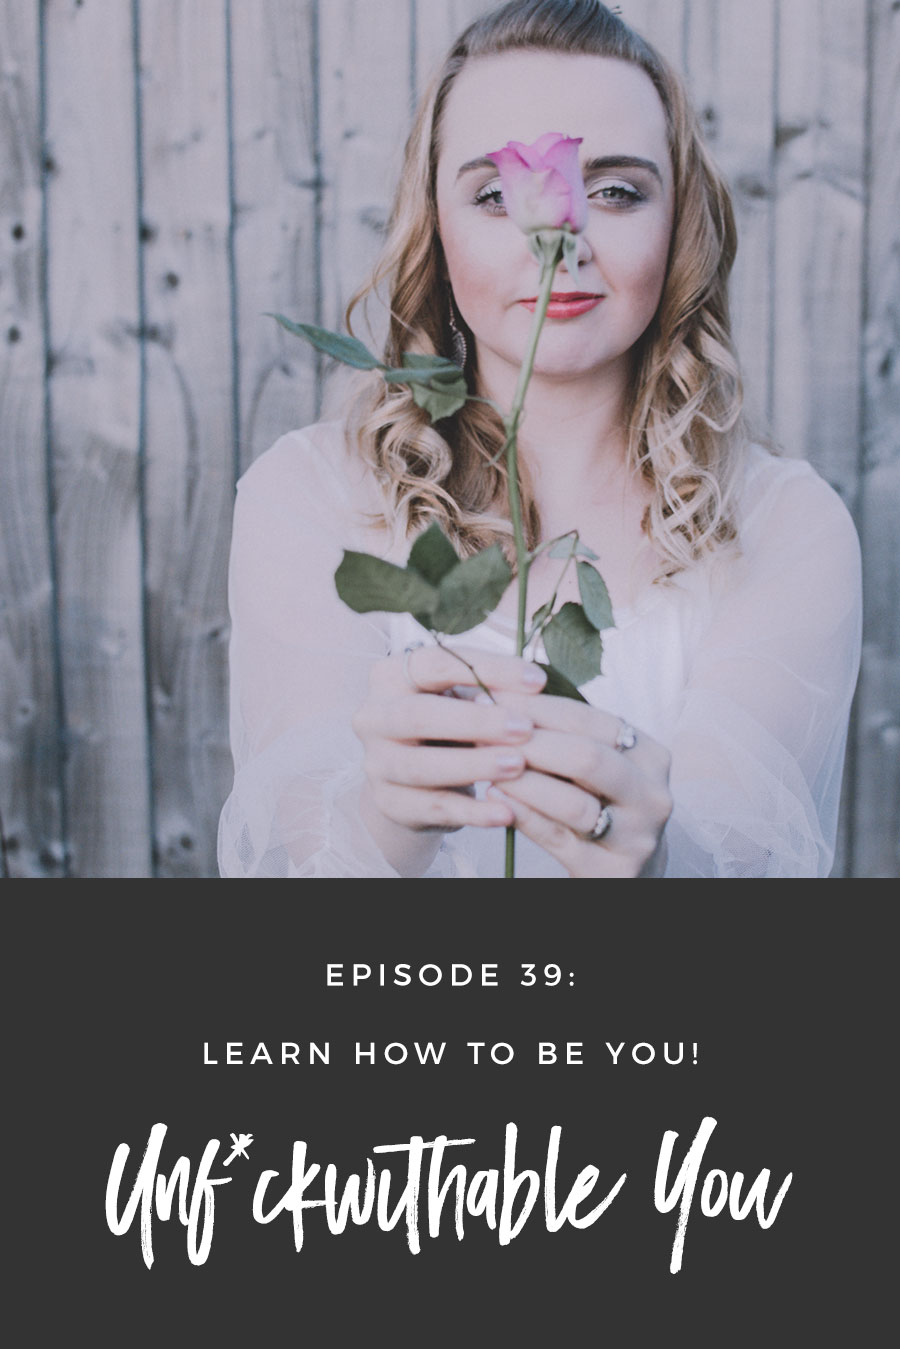 Unf*ckwithable You Episode 39: Learn How To Be You!